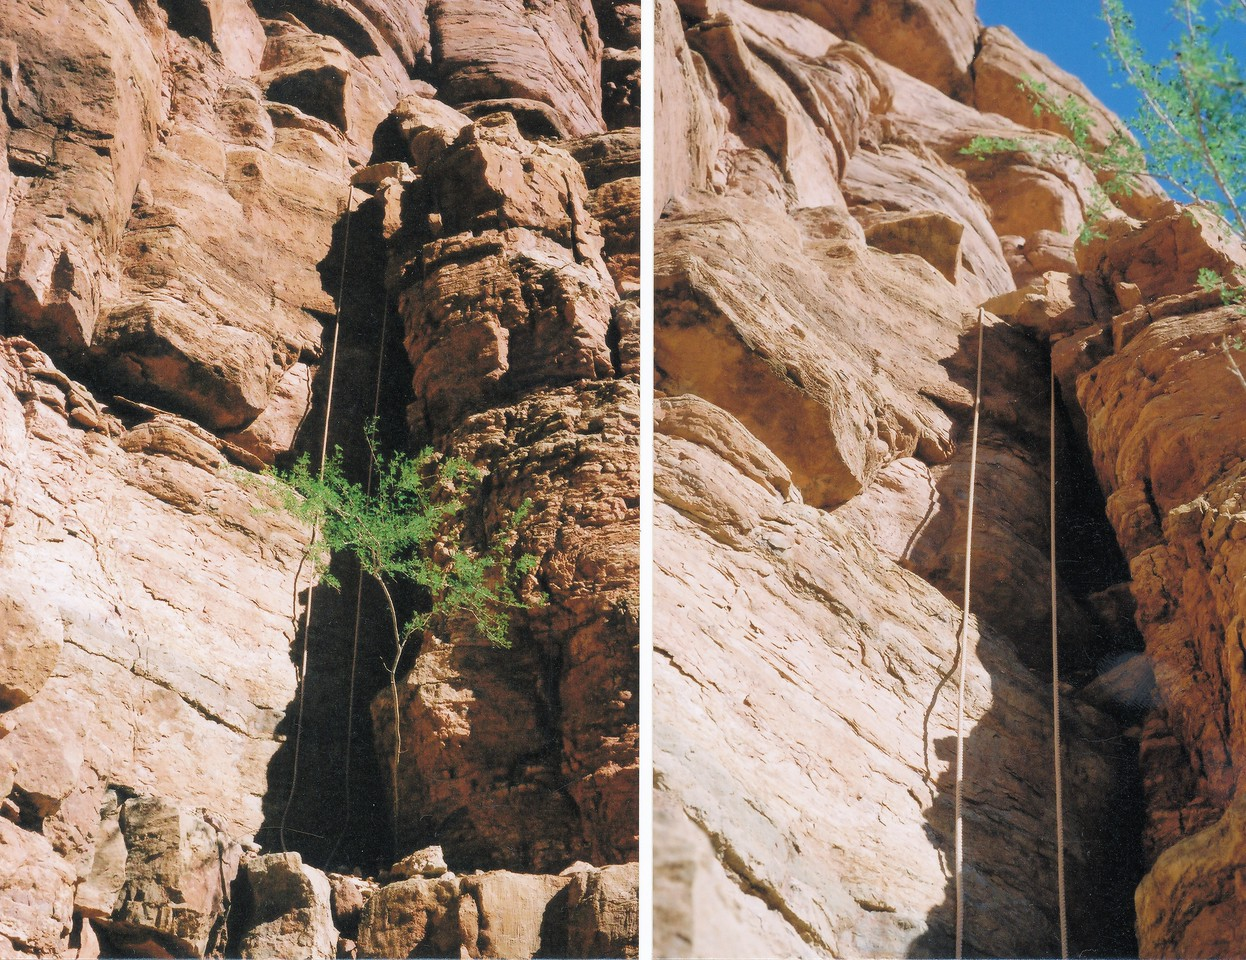 The original ropes used by the 1956 recovery efforts still hang from the cliffs and ledges of Chuar Butte after a half century. (2002 Trip)